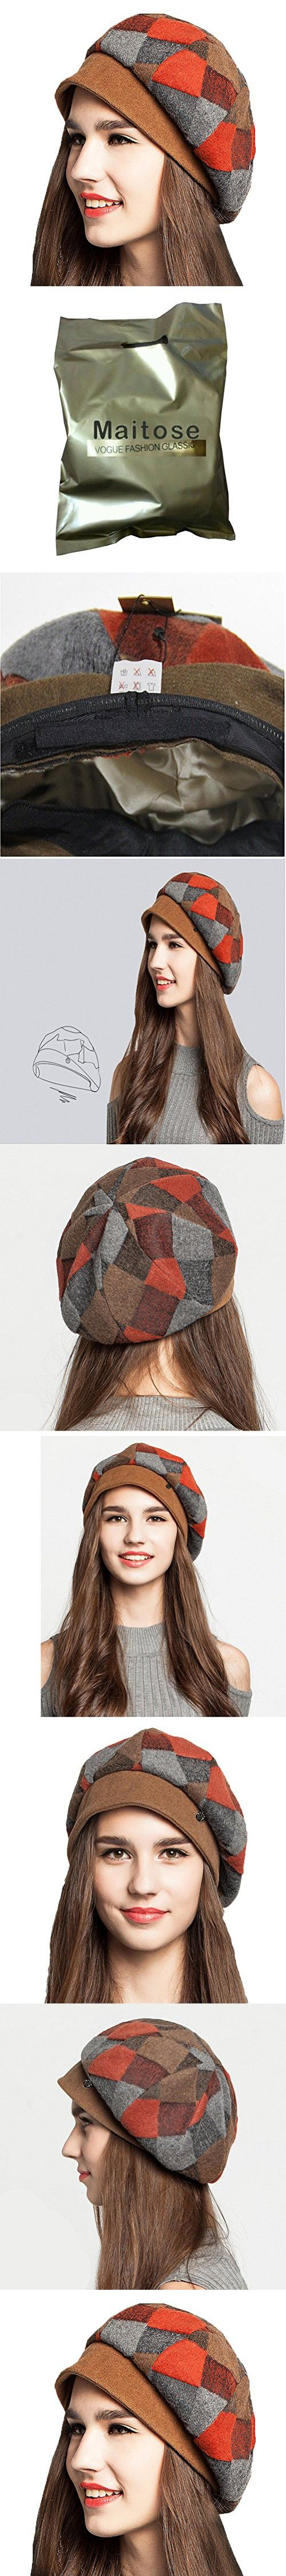 Maitose Women's Scottish Plaid Wool Peaked Cap Beret Orange Red